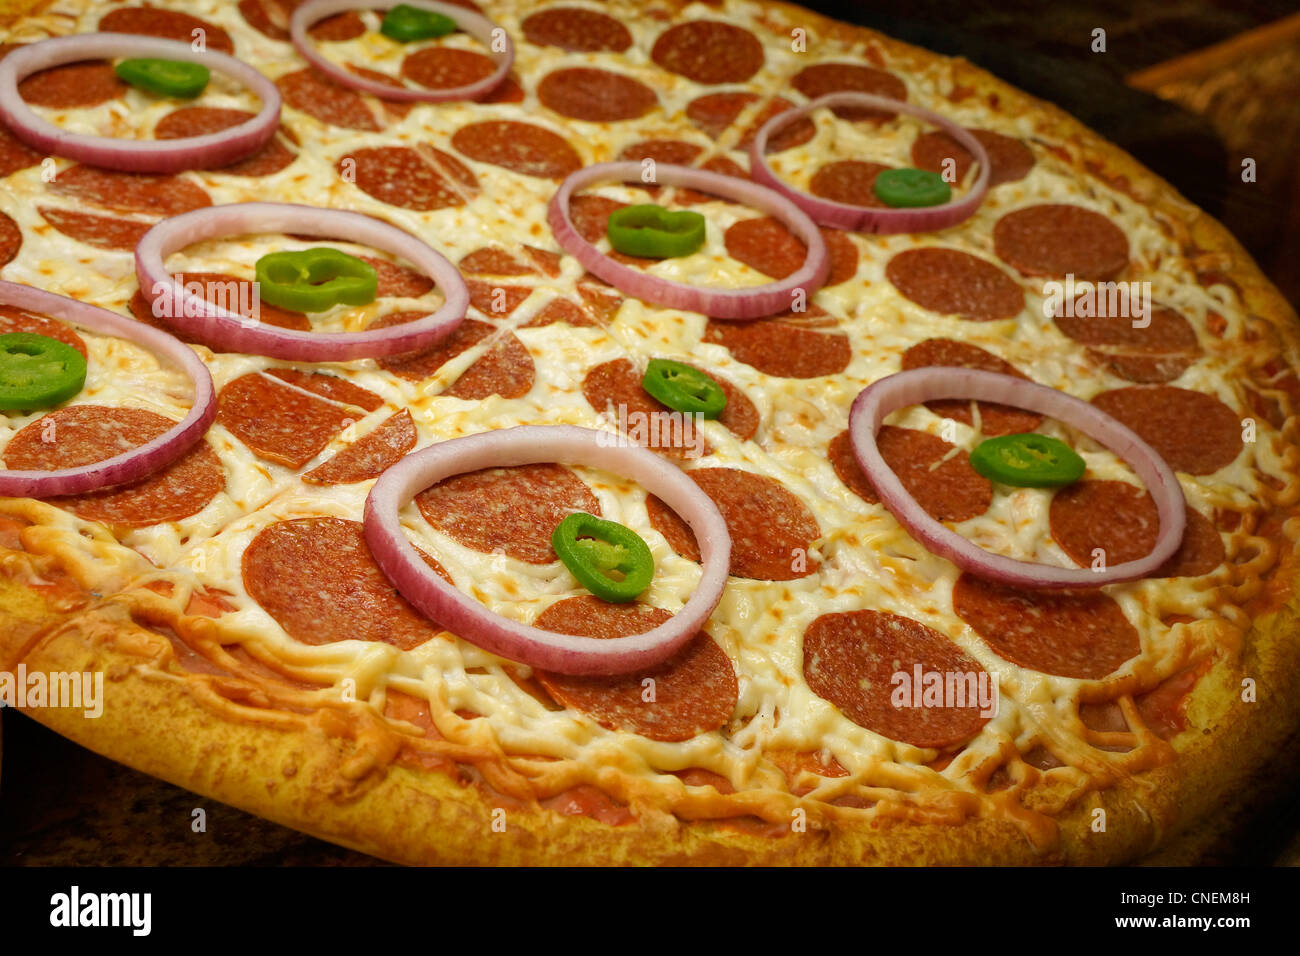 Pizza, displayed for sale - Stock Image